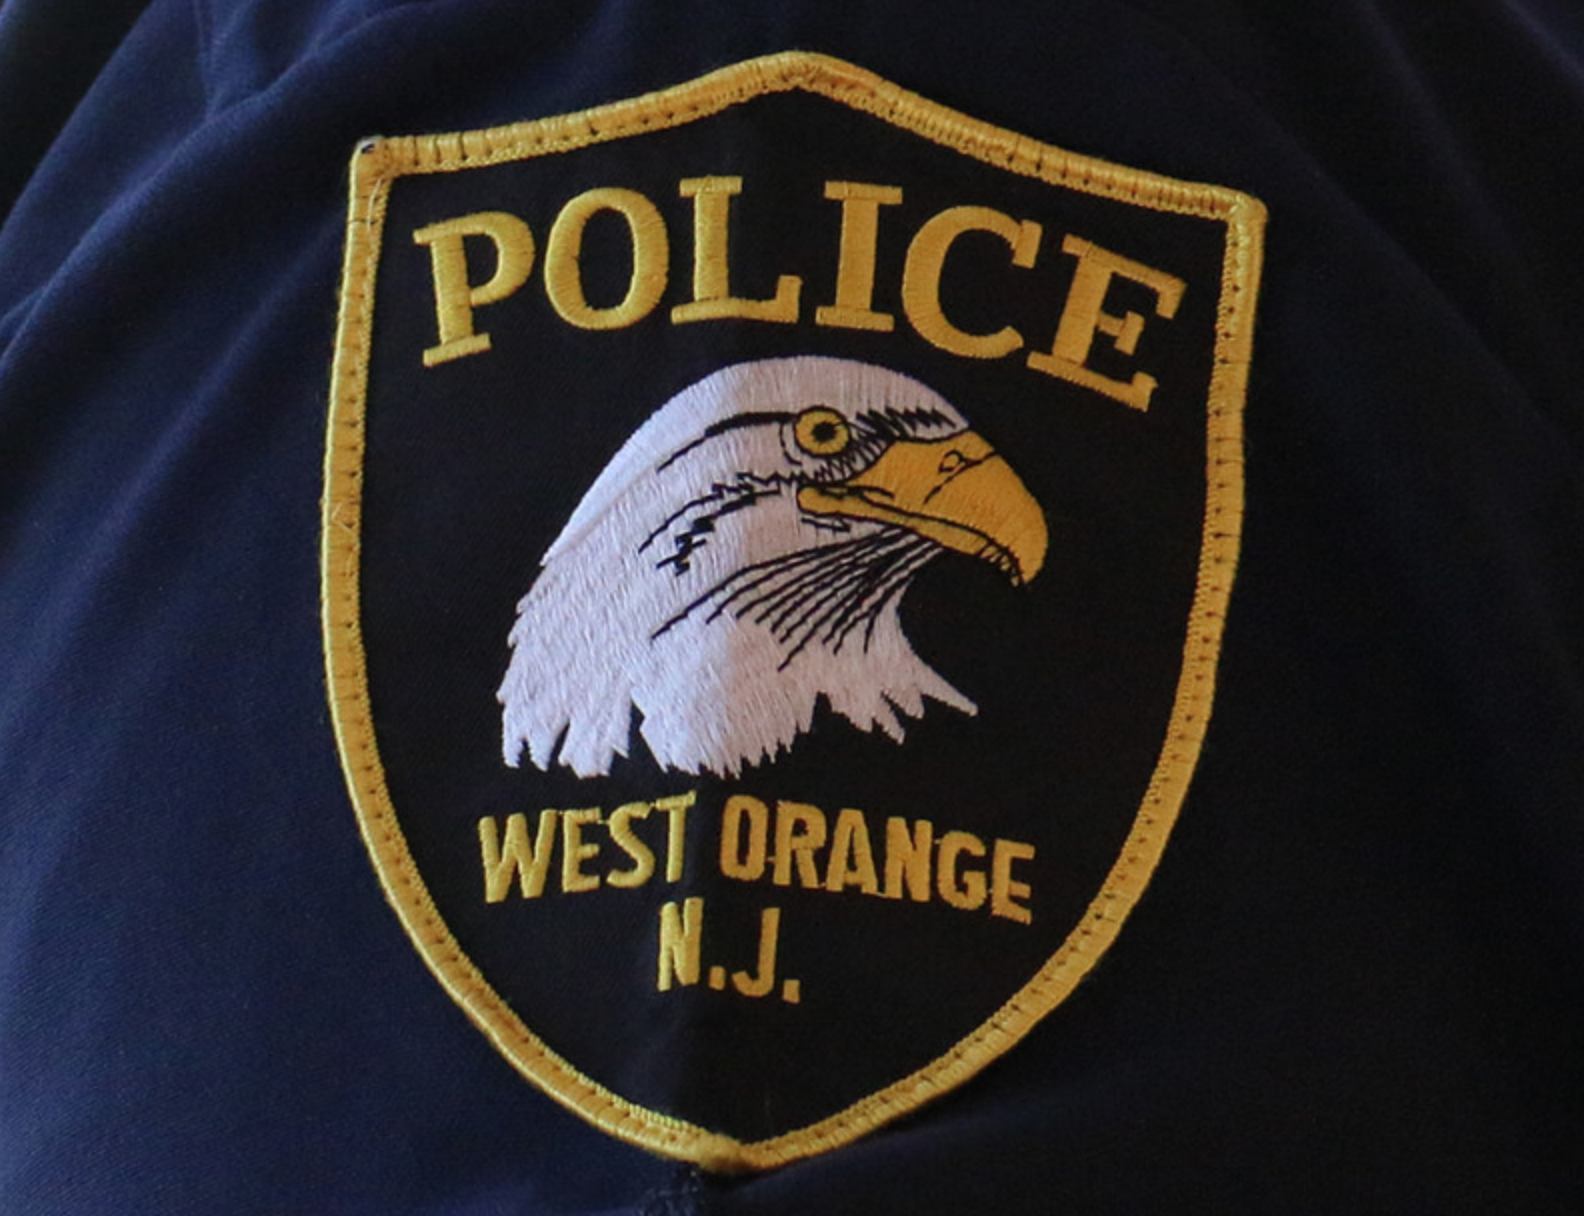 8b4aa436607e1b3d24ea_West_Orange_Police.jpg